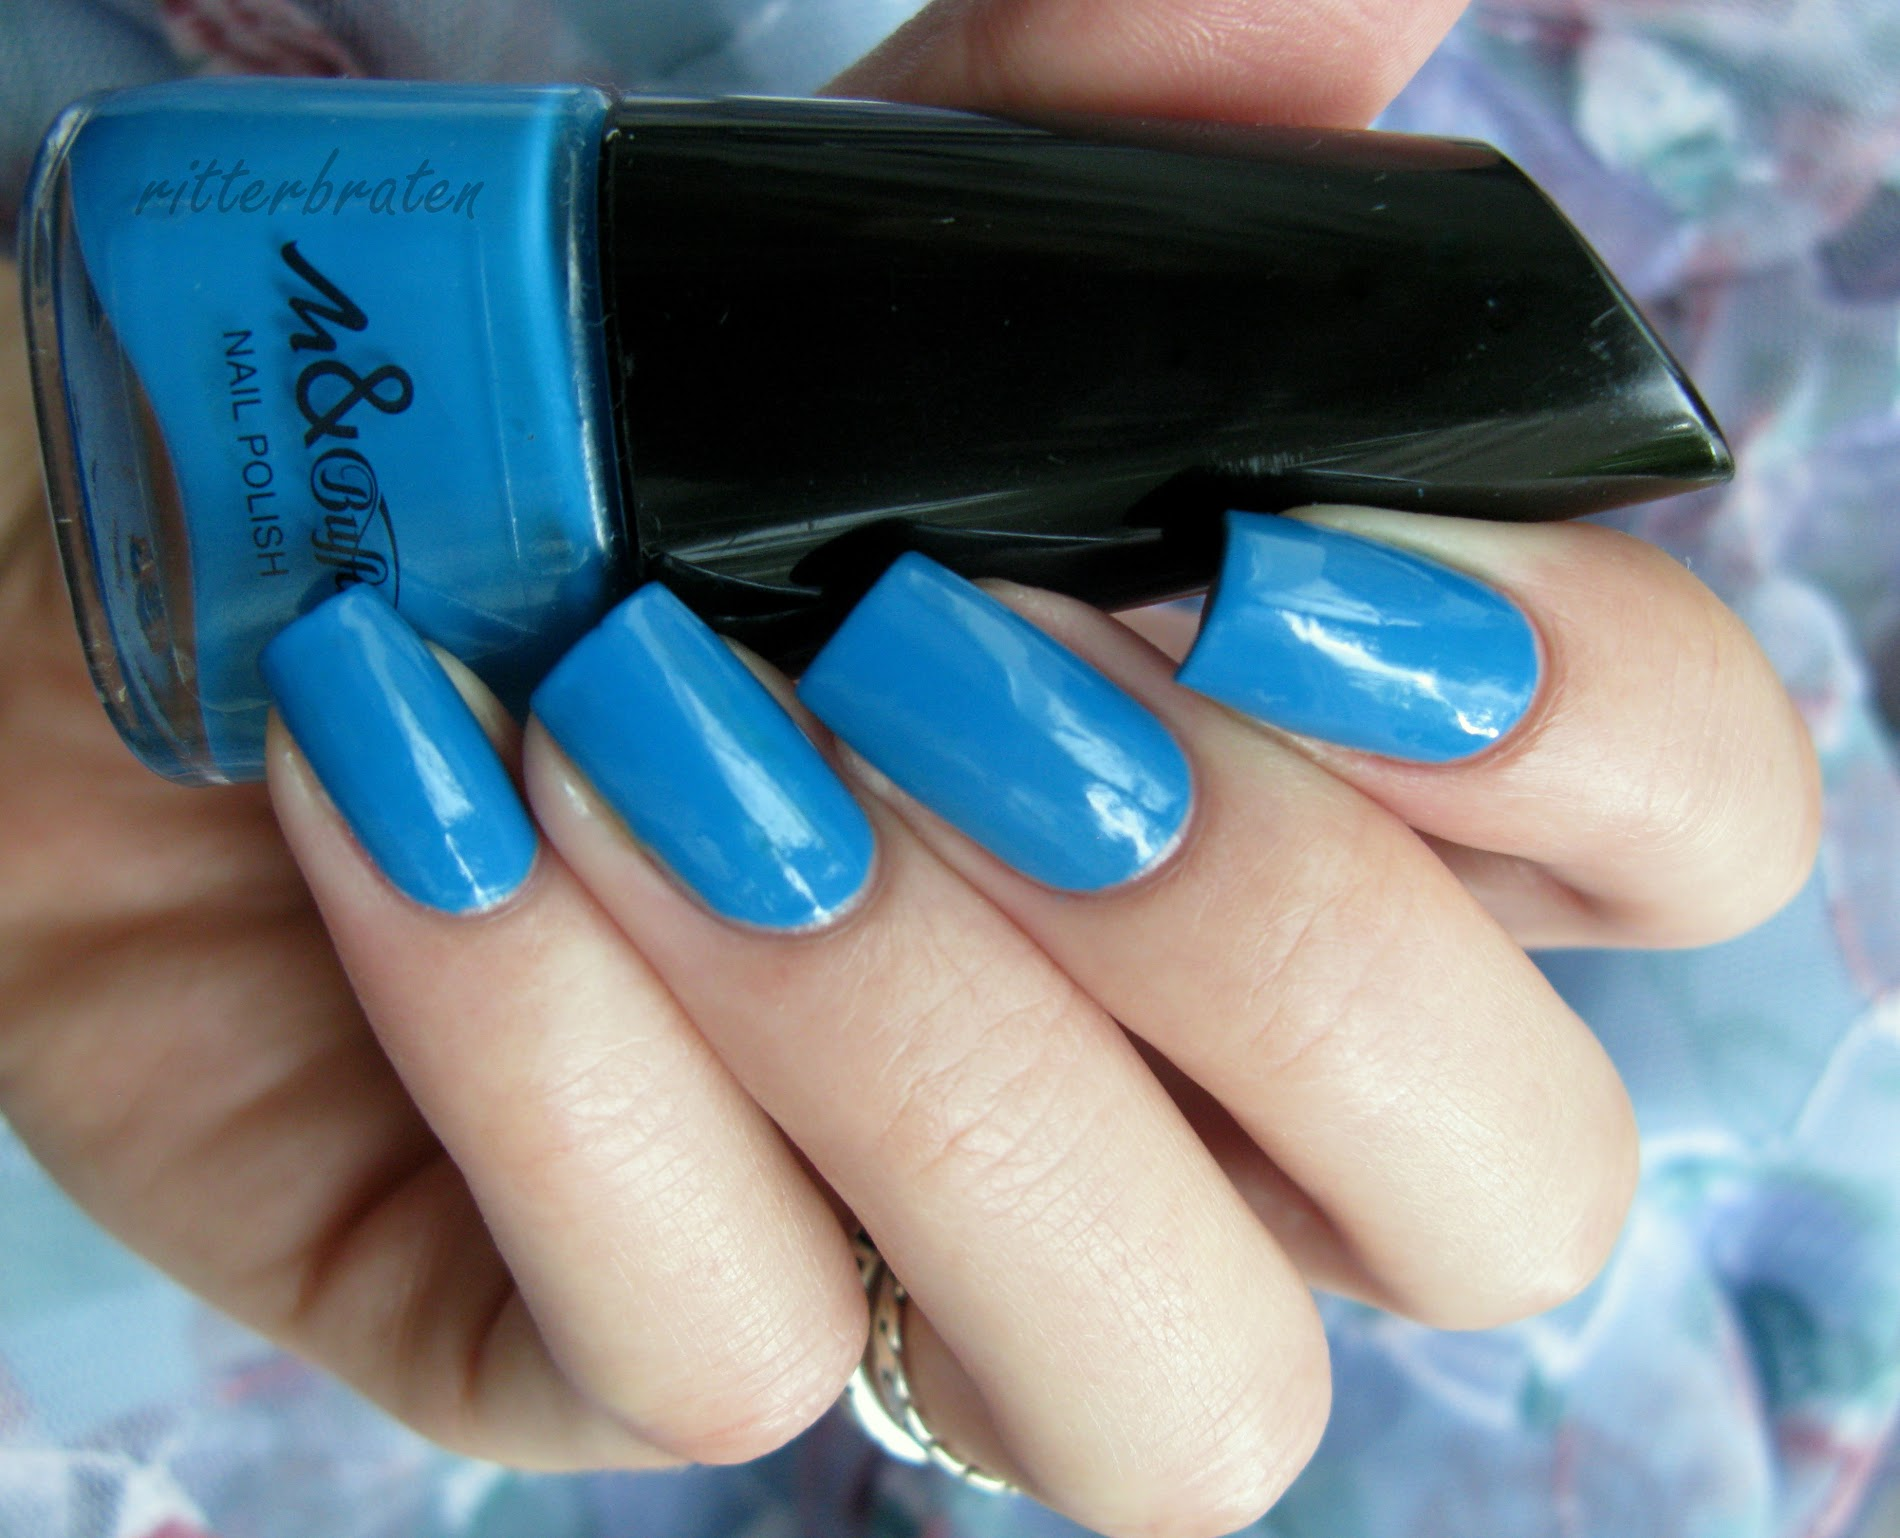 Manhattan Nagellack nail polish